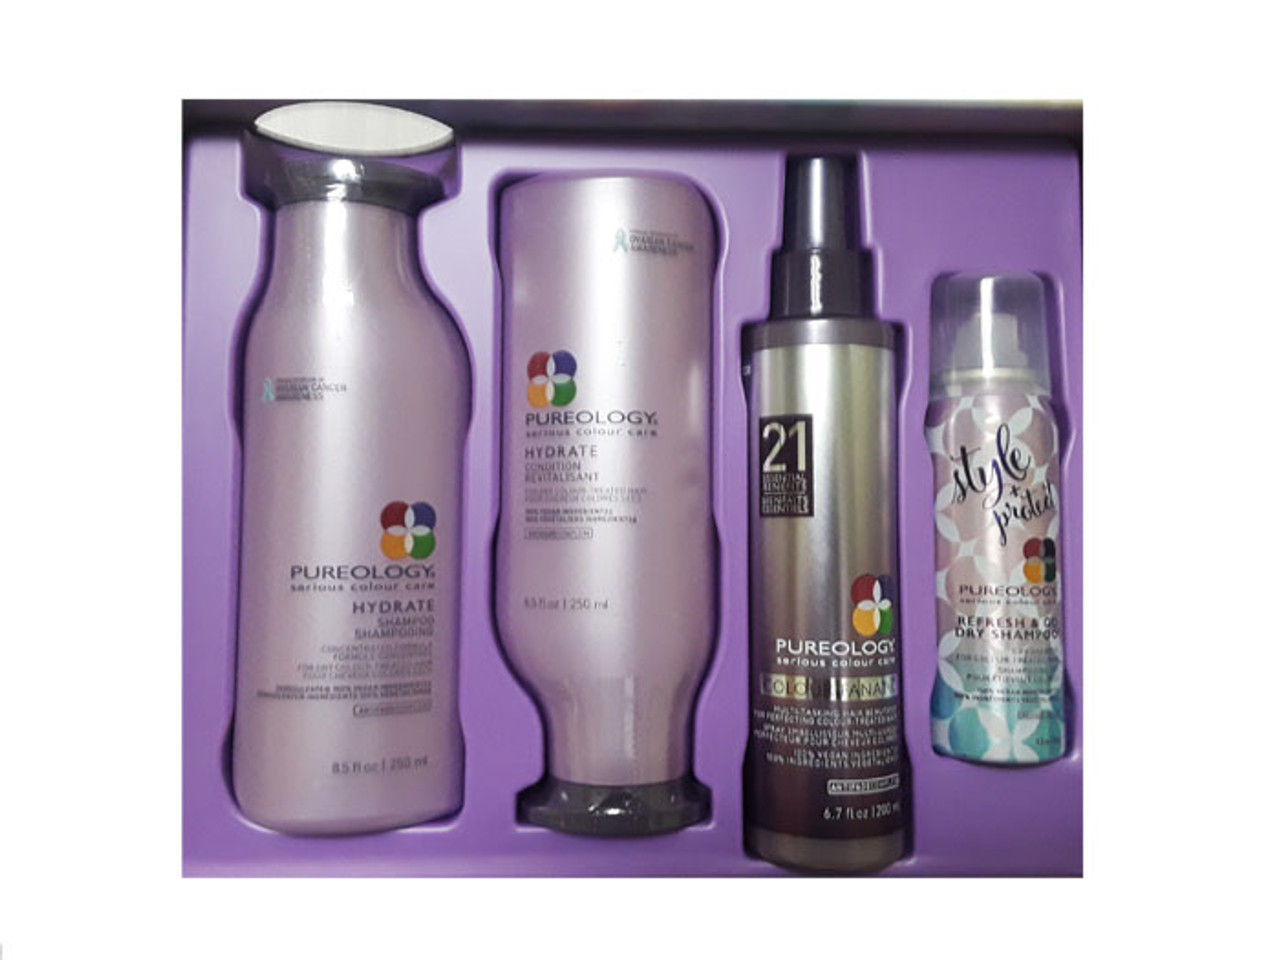 Pureology Hydrate Shampoo Conditioner Color Care Dry Shampoo Gift Set